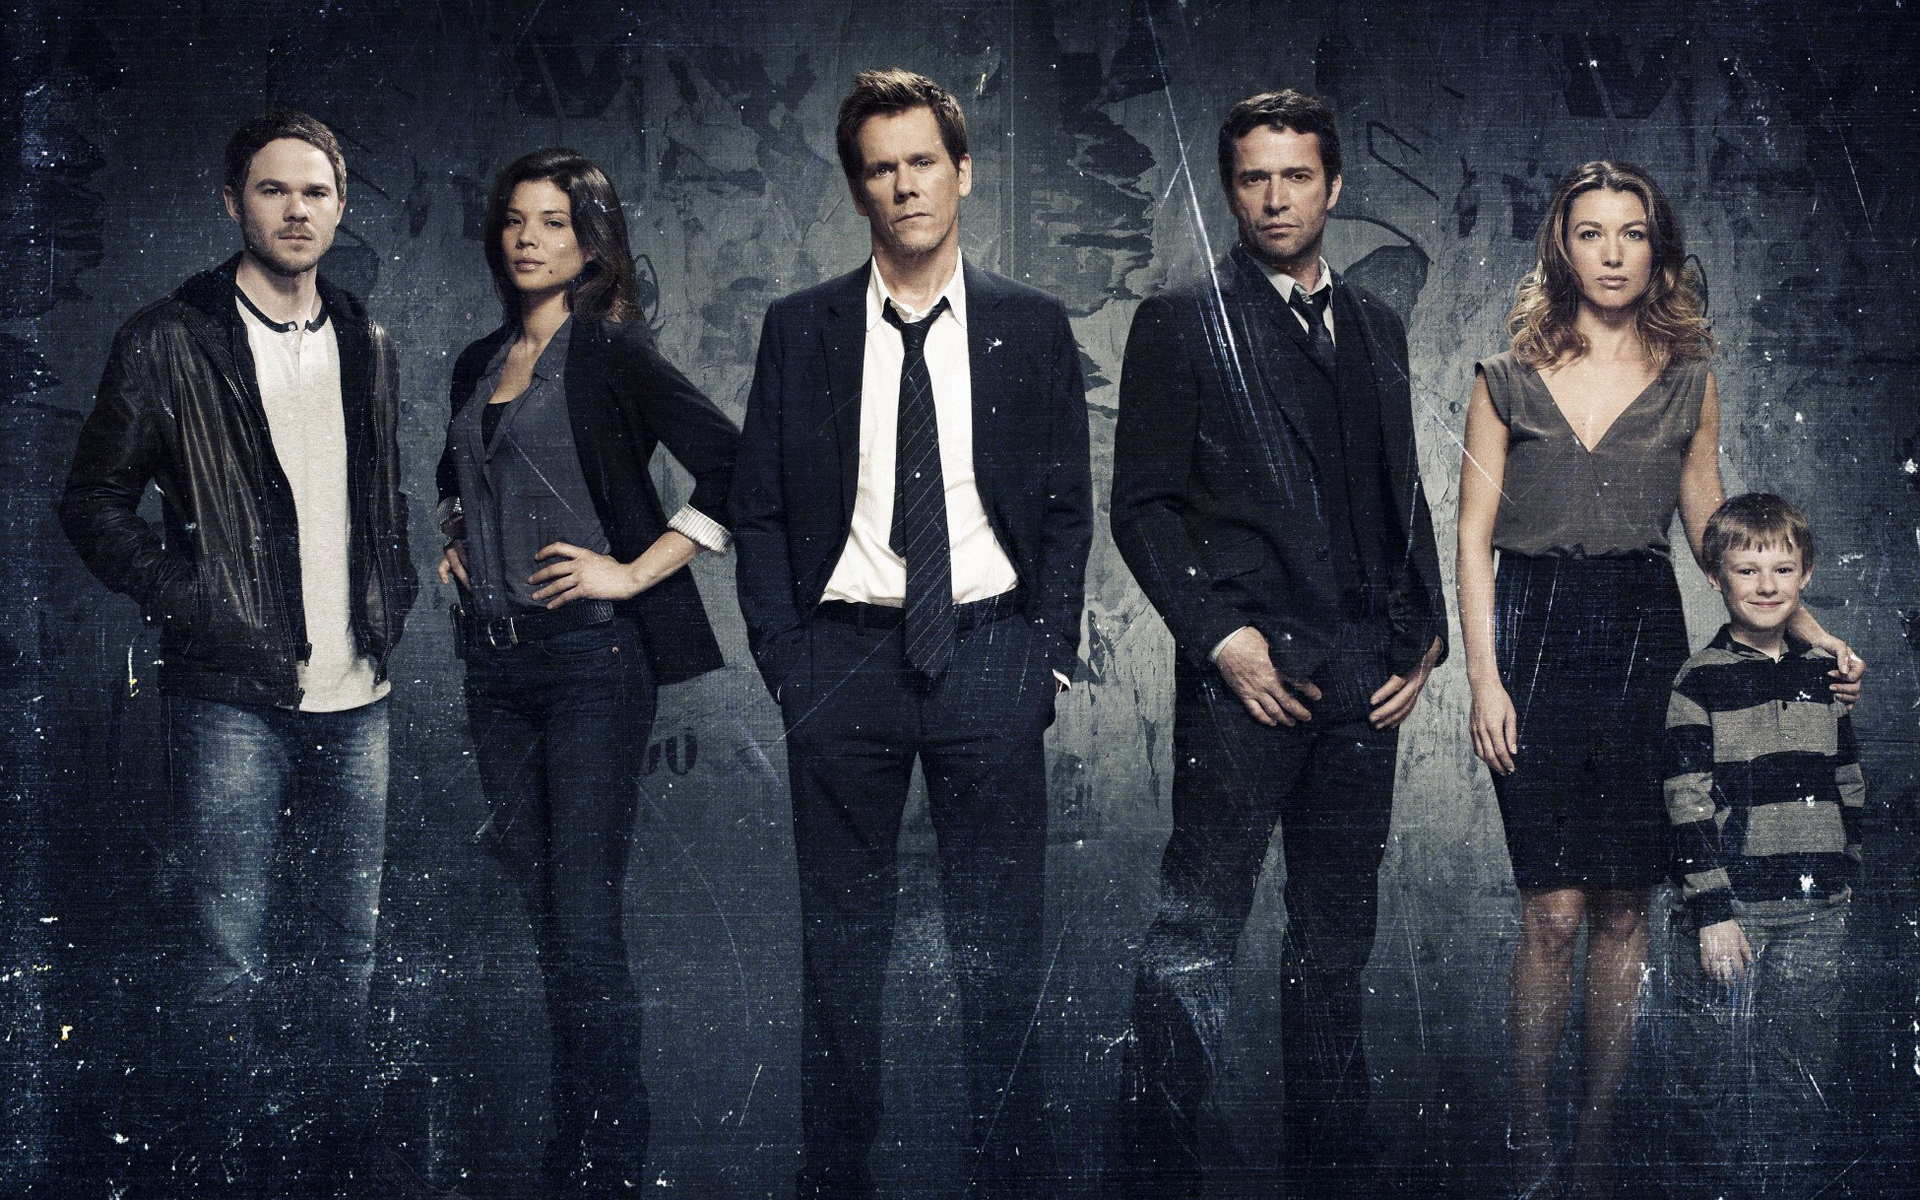 Download wallpaper 1920x1200 the following actors kevin bacon 1920x1200